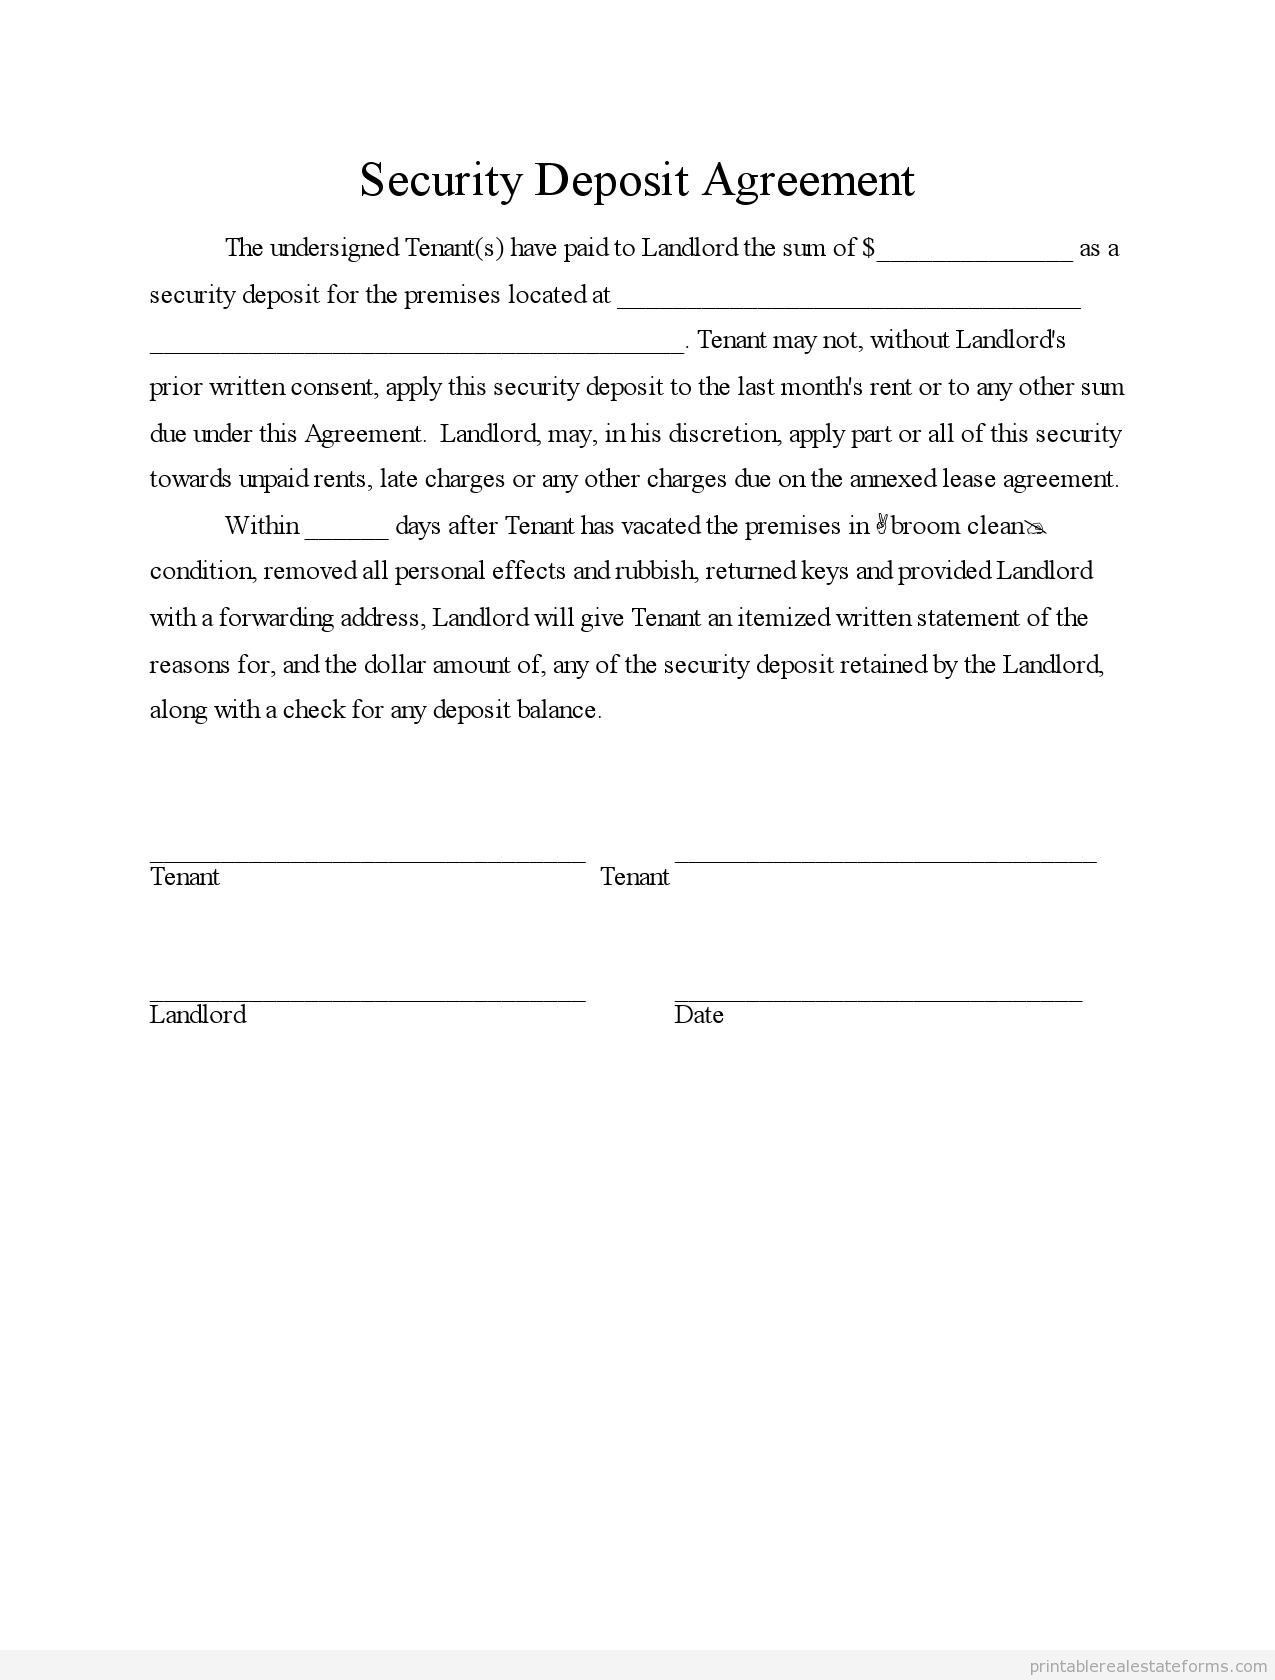 Sample printable security deposit agreement form sample for Turnkey contract template